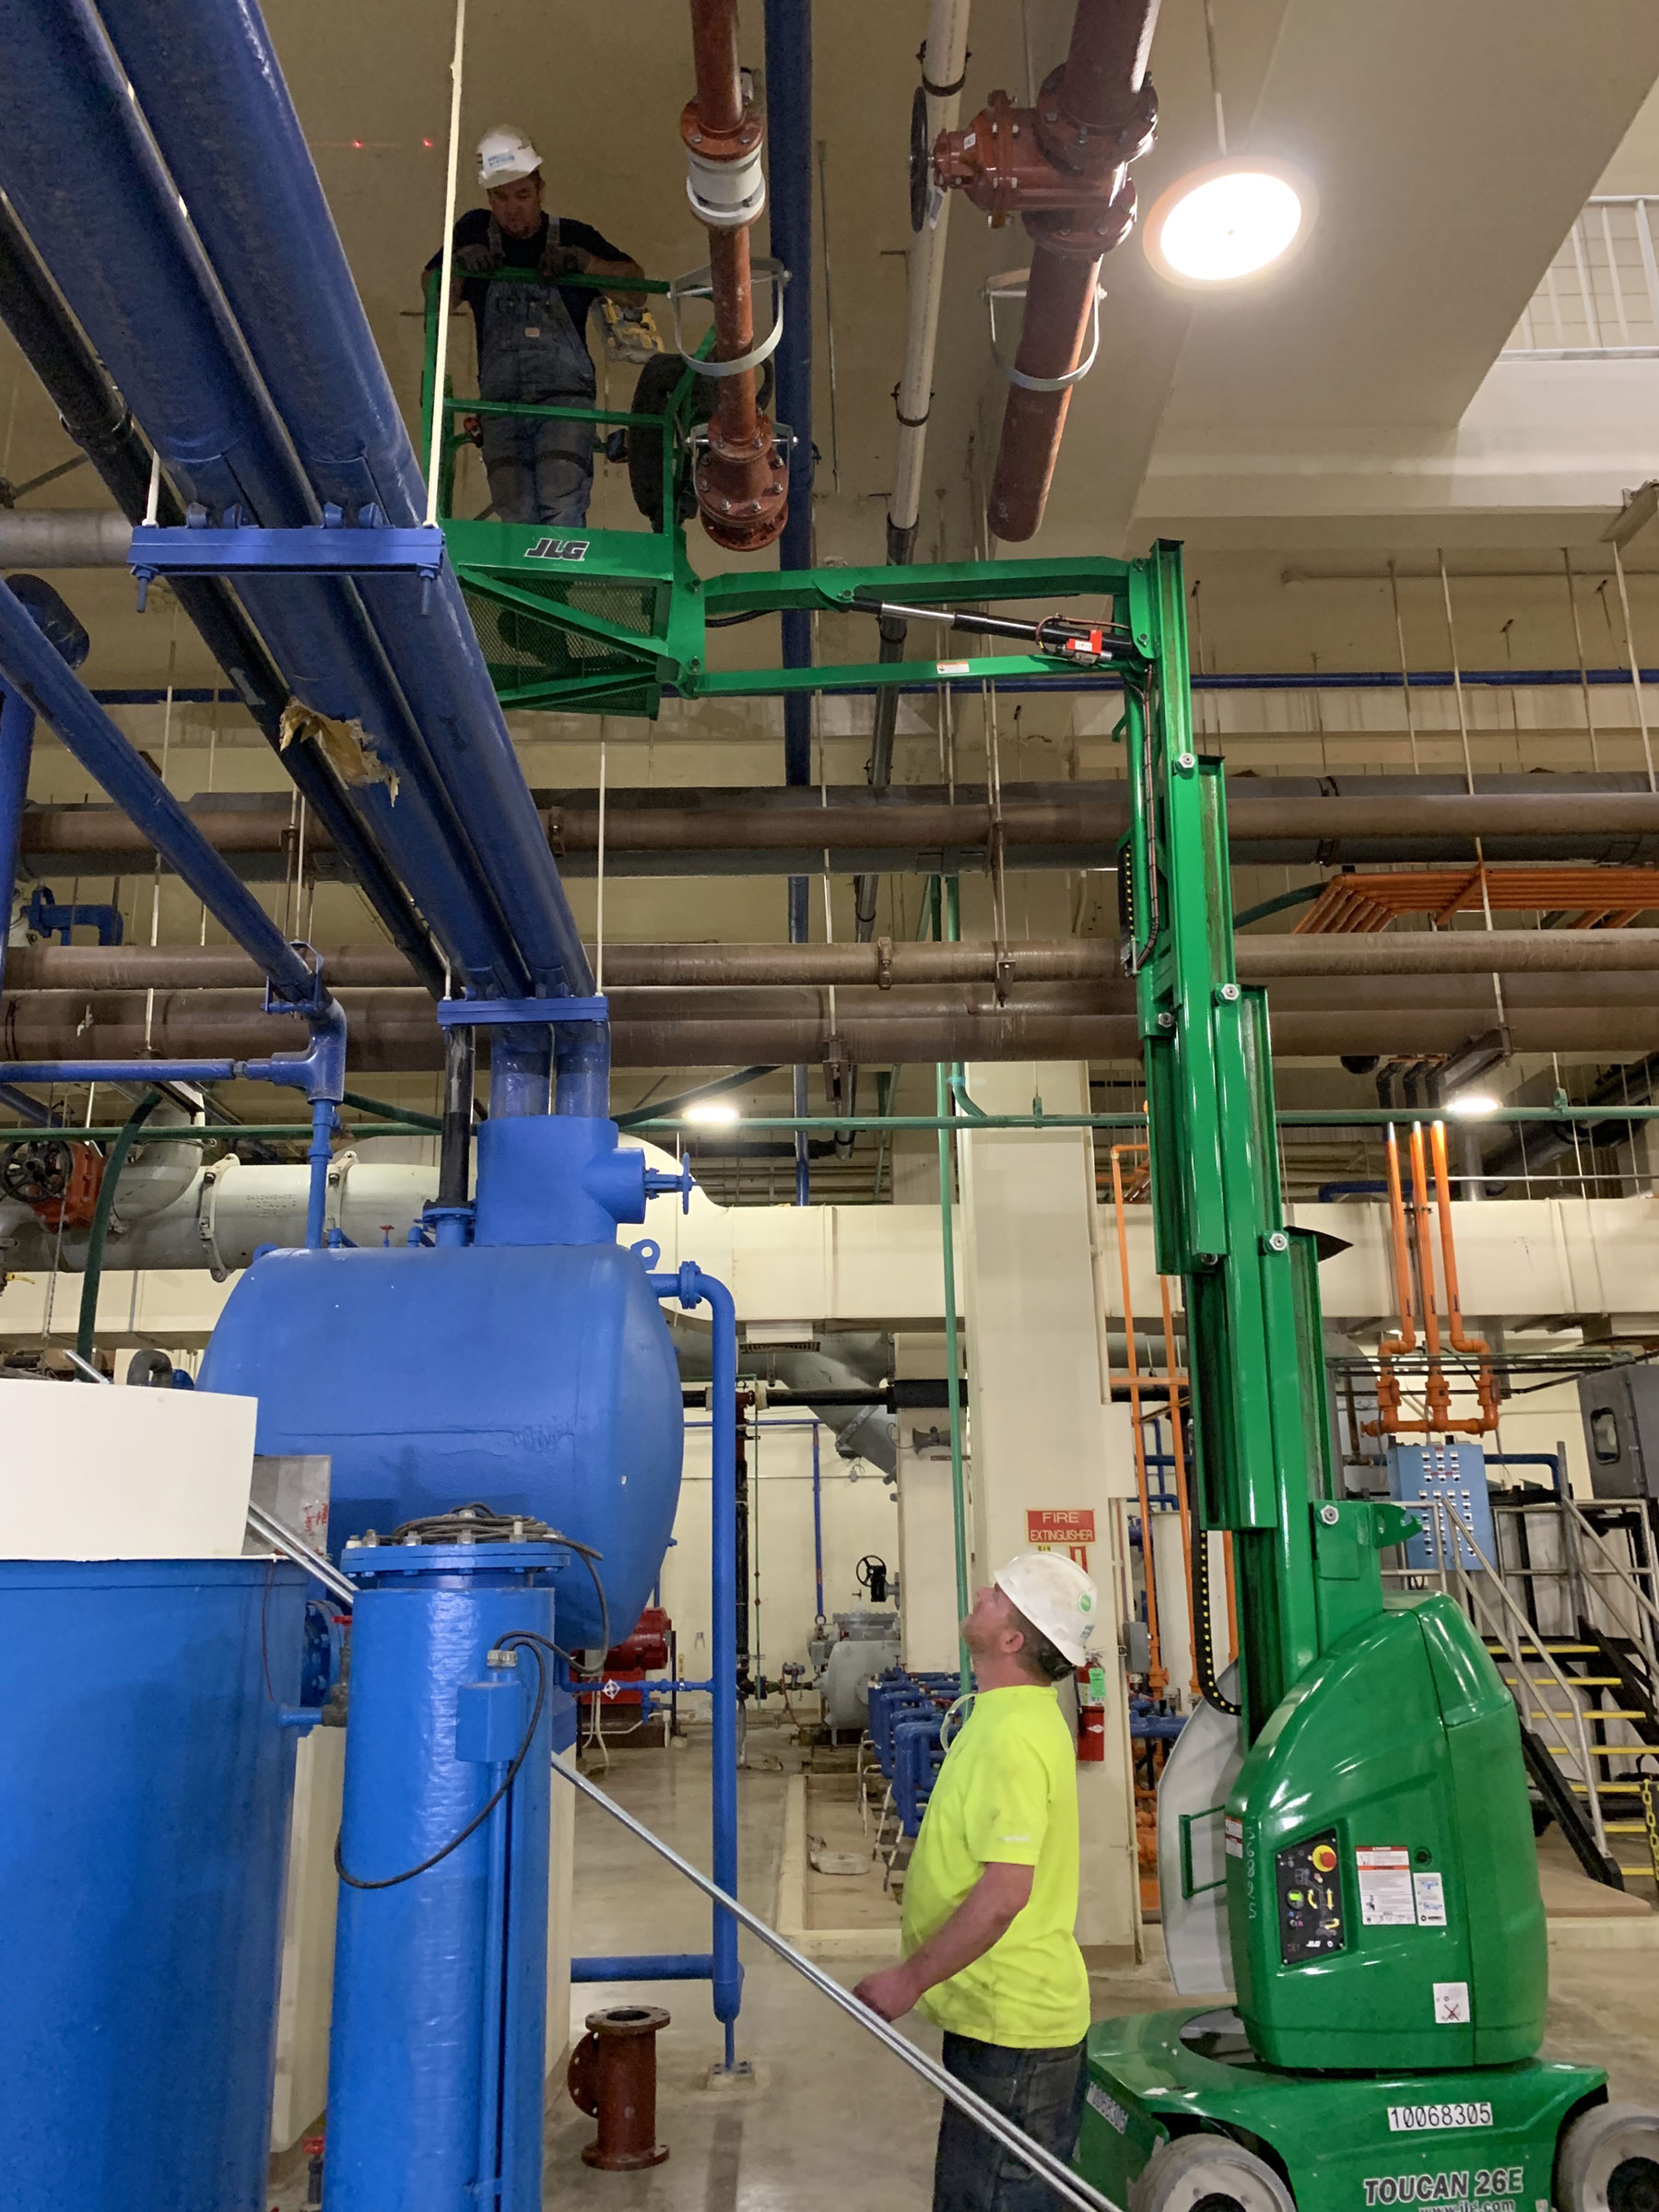 https://pipeandductsystems.com/wp-content/uploads/2019/09/Lemay-WWTP_sm.jpg